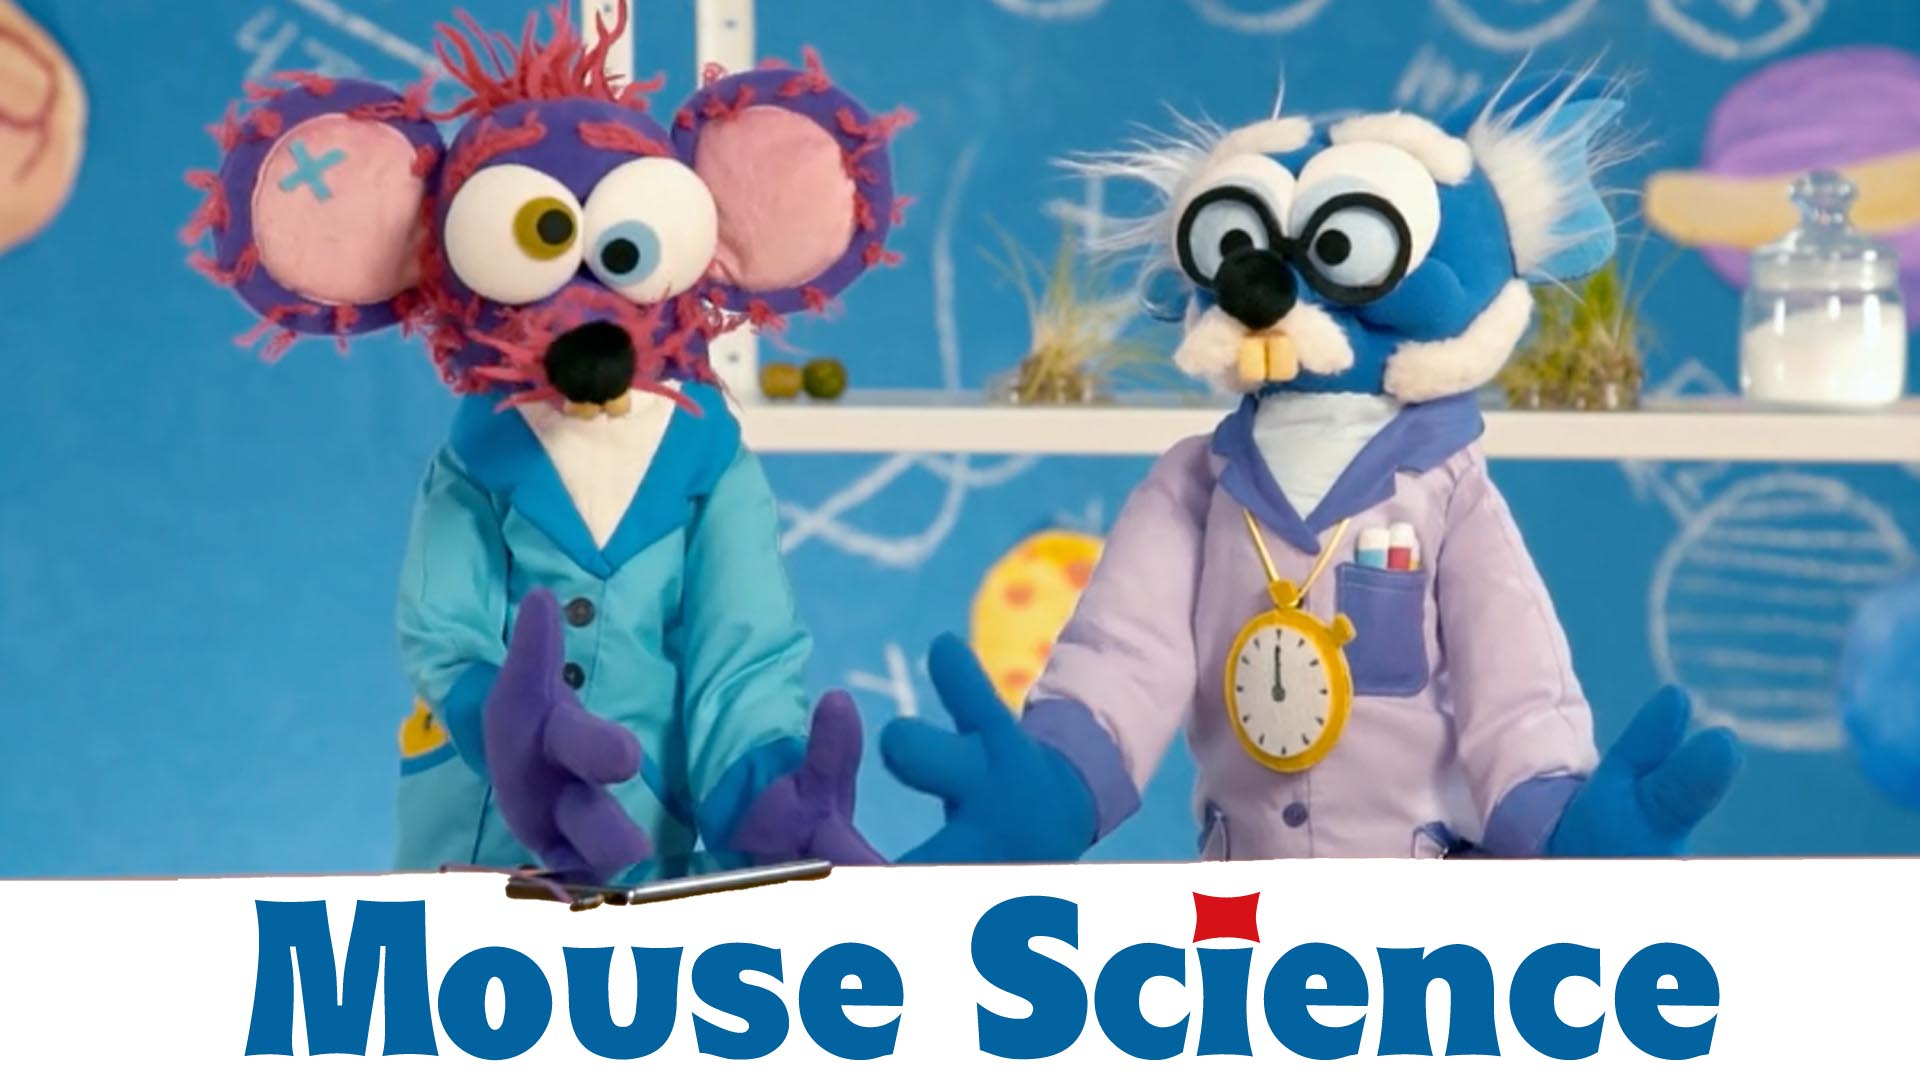 Mouse Science